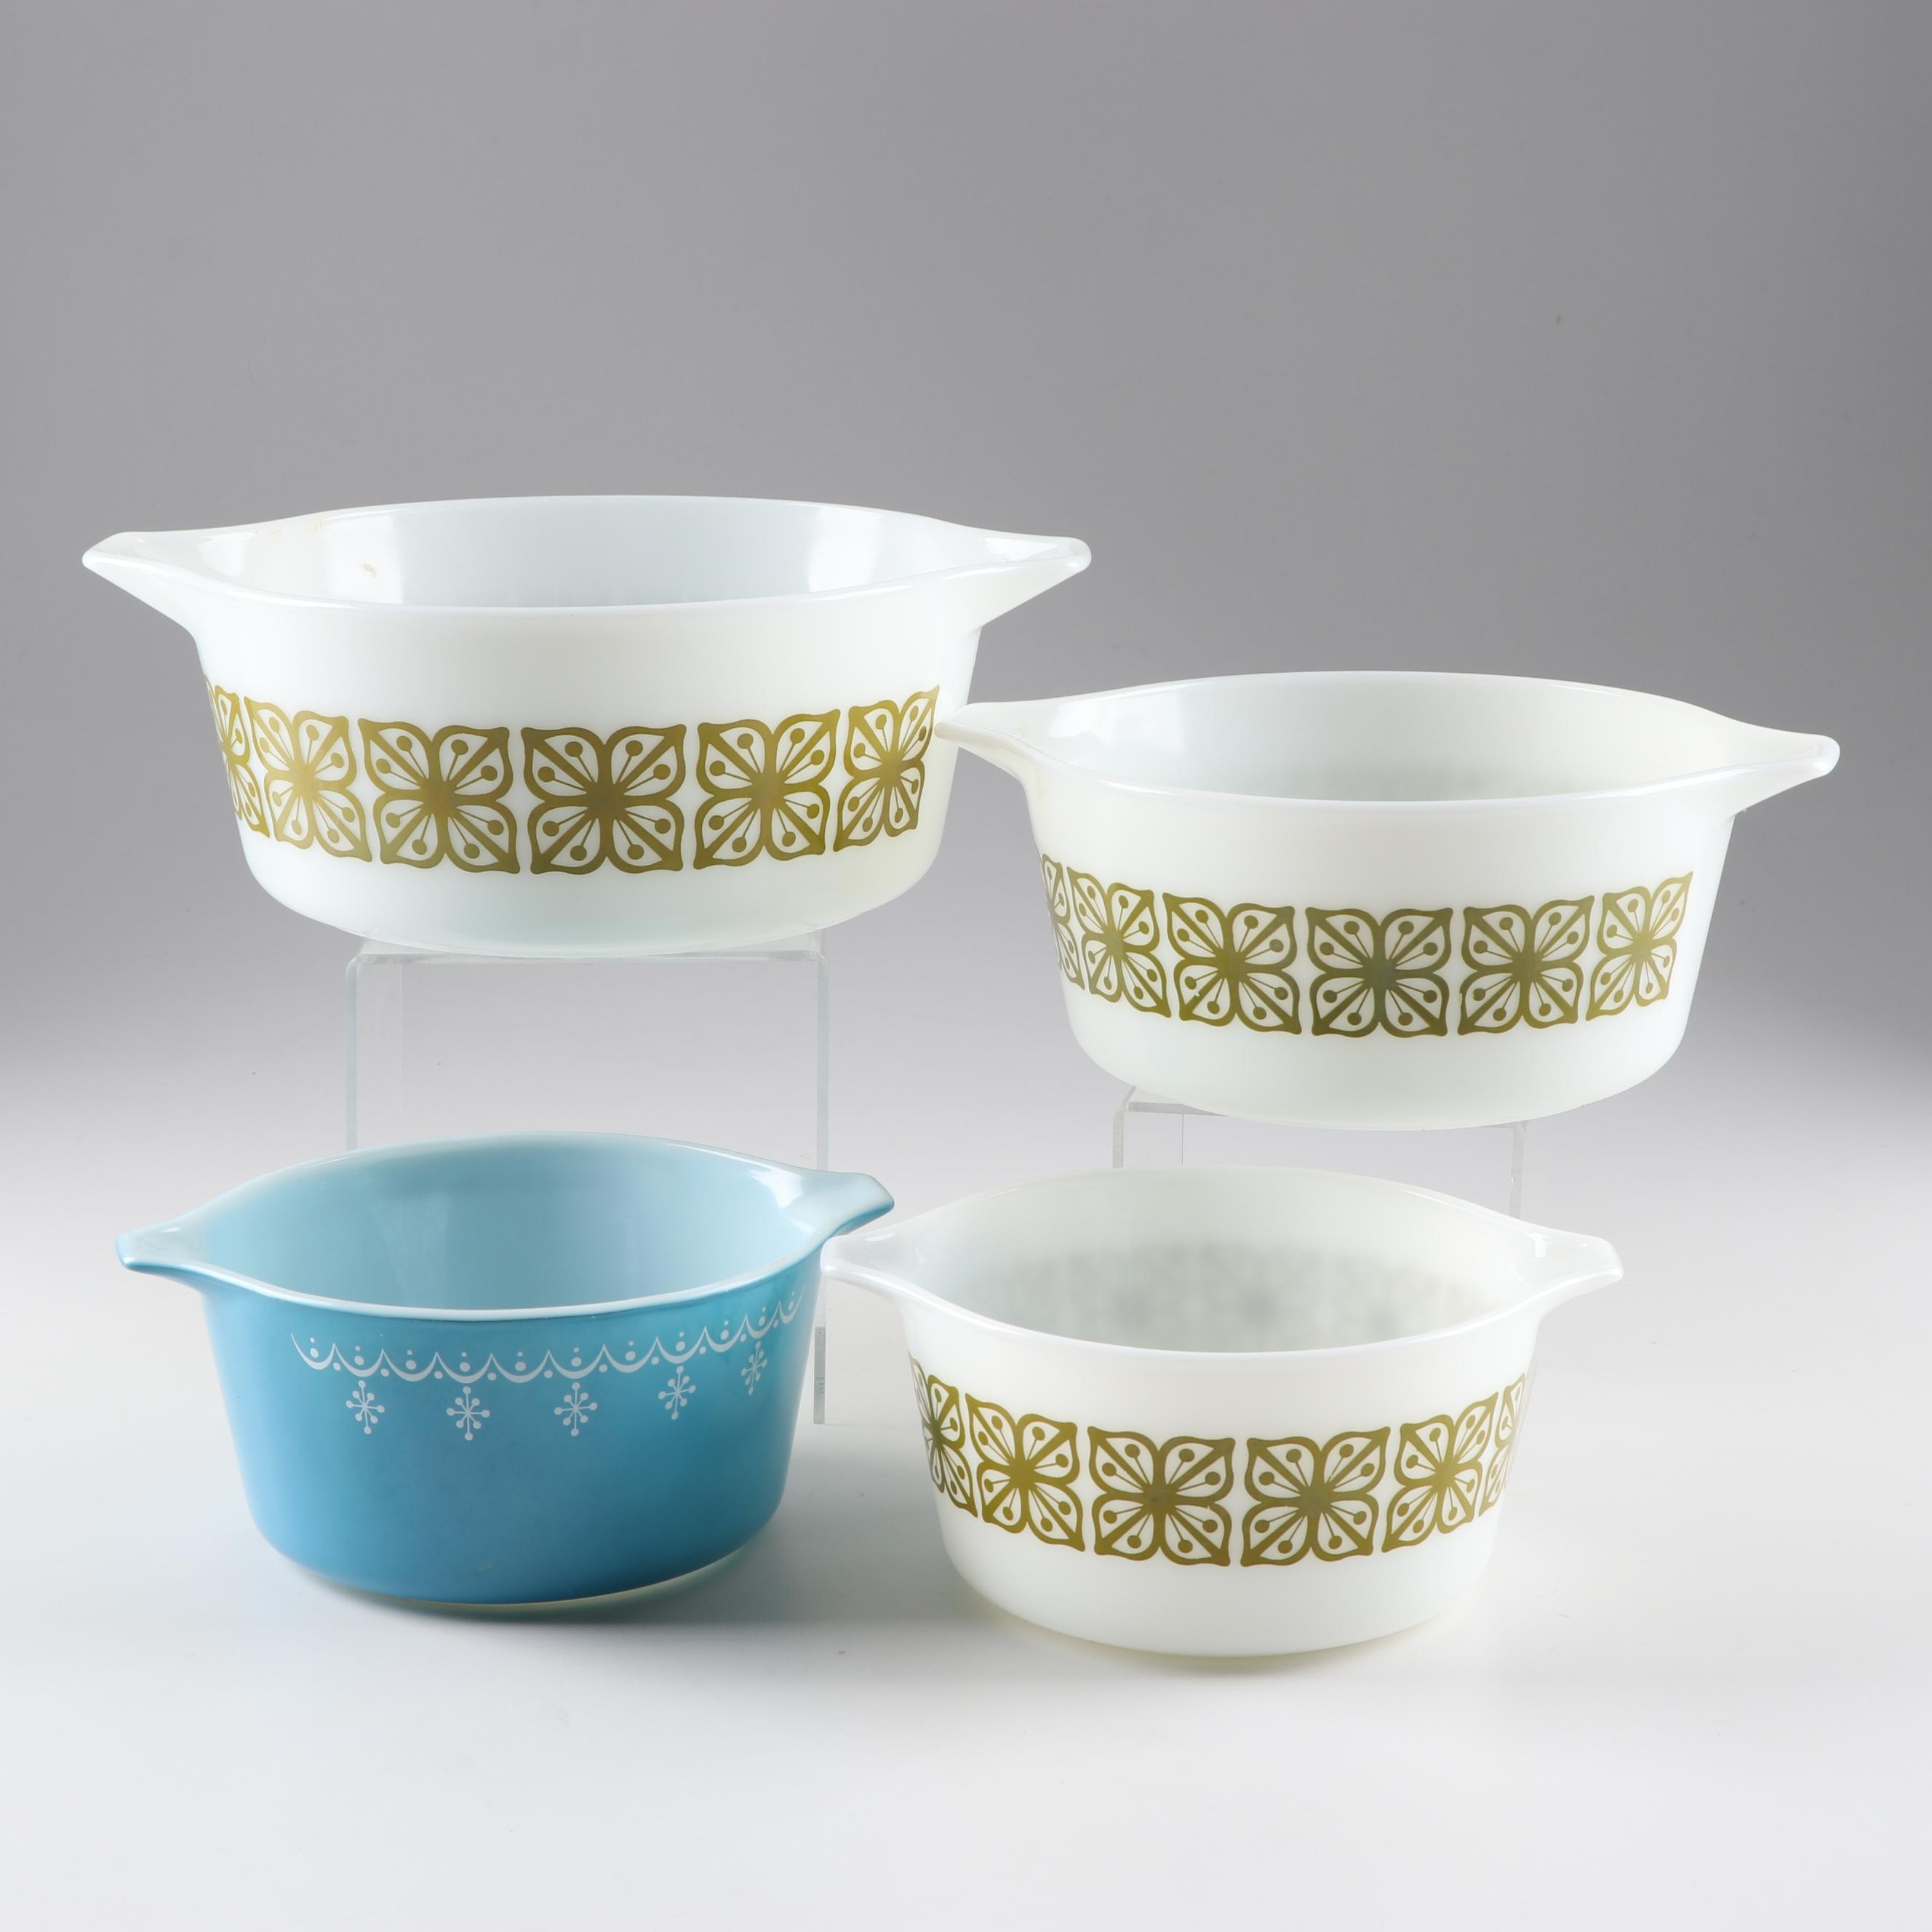 "Pyrex ""Square Flowers"" and ""Snowflake"" Bowls, Mid-20th Century"